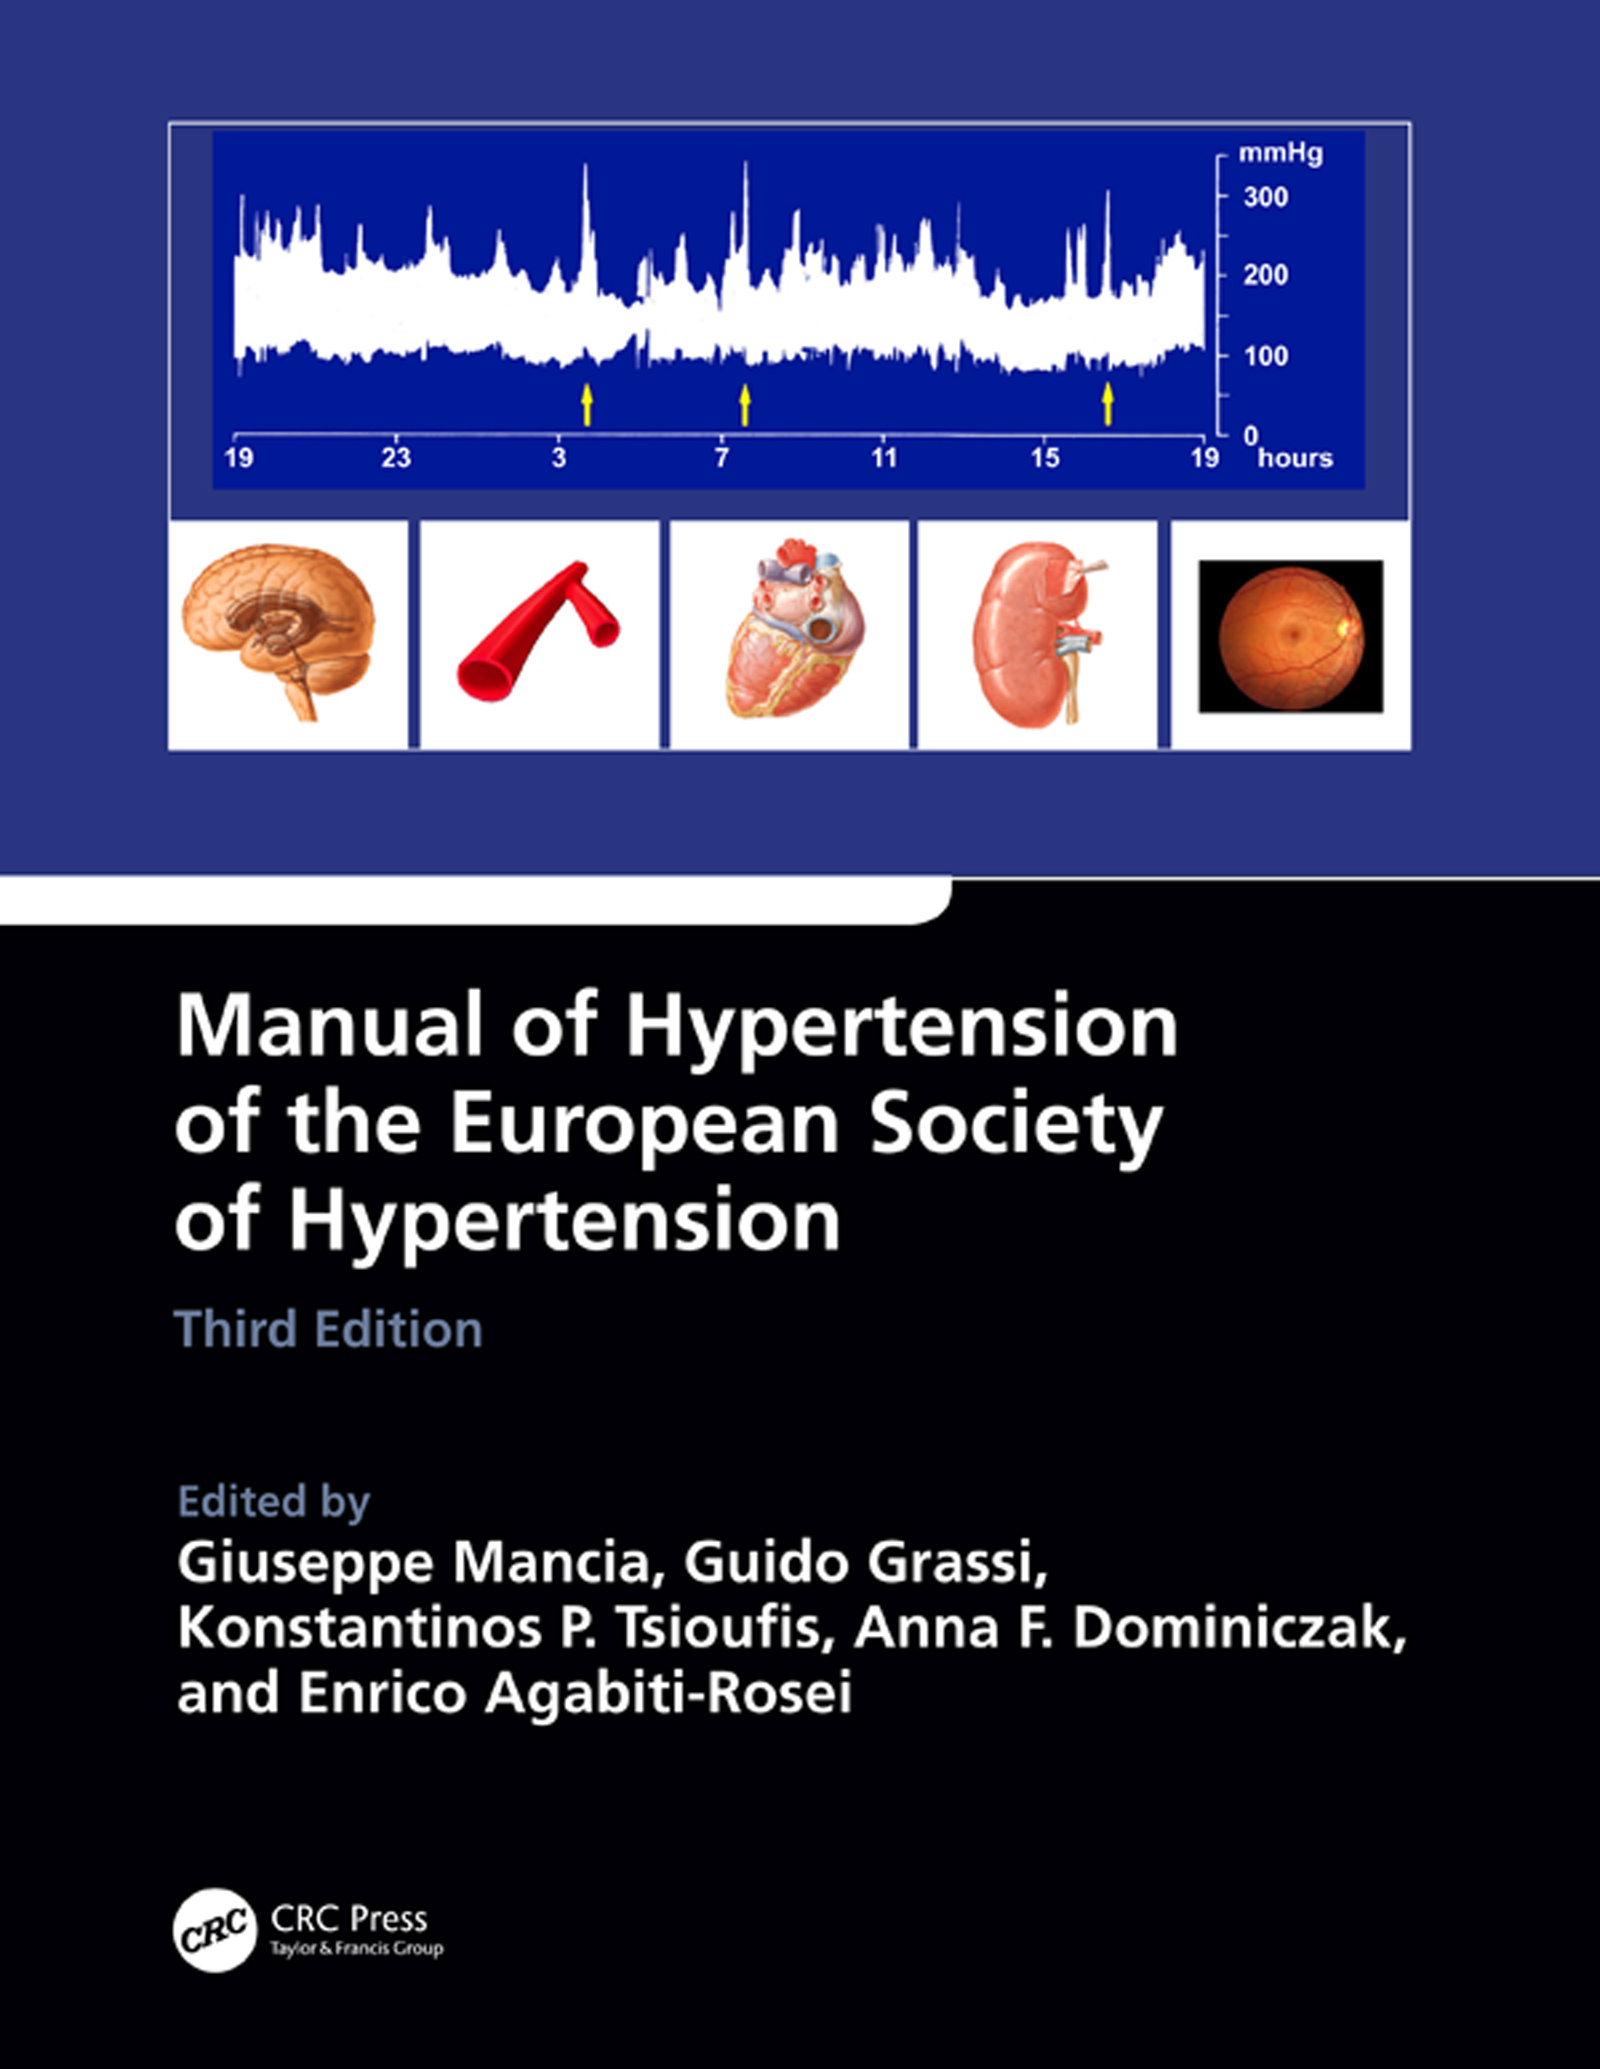 Genetic Basis of Blood Pressure and Hypertension